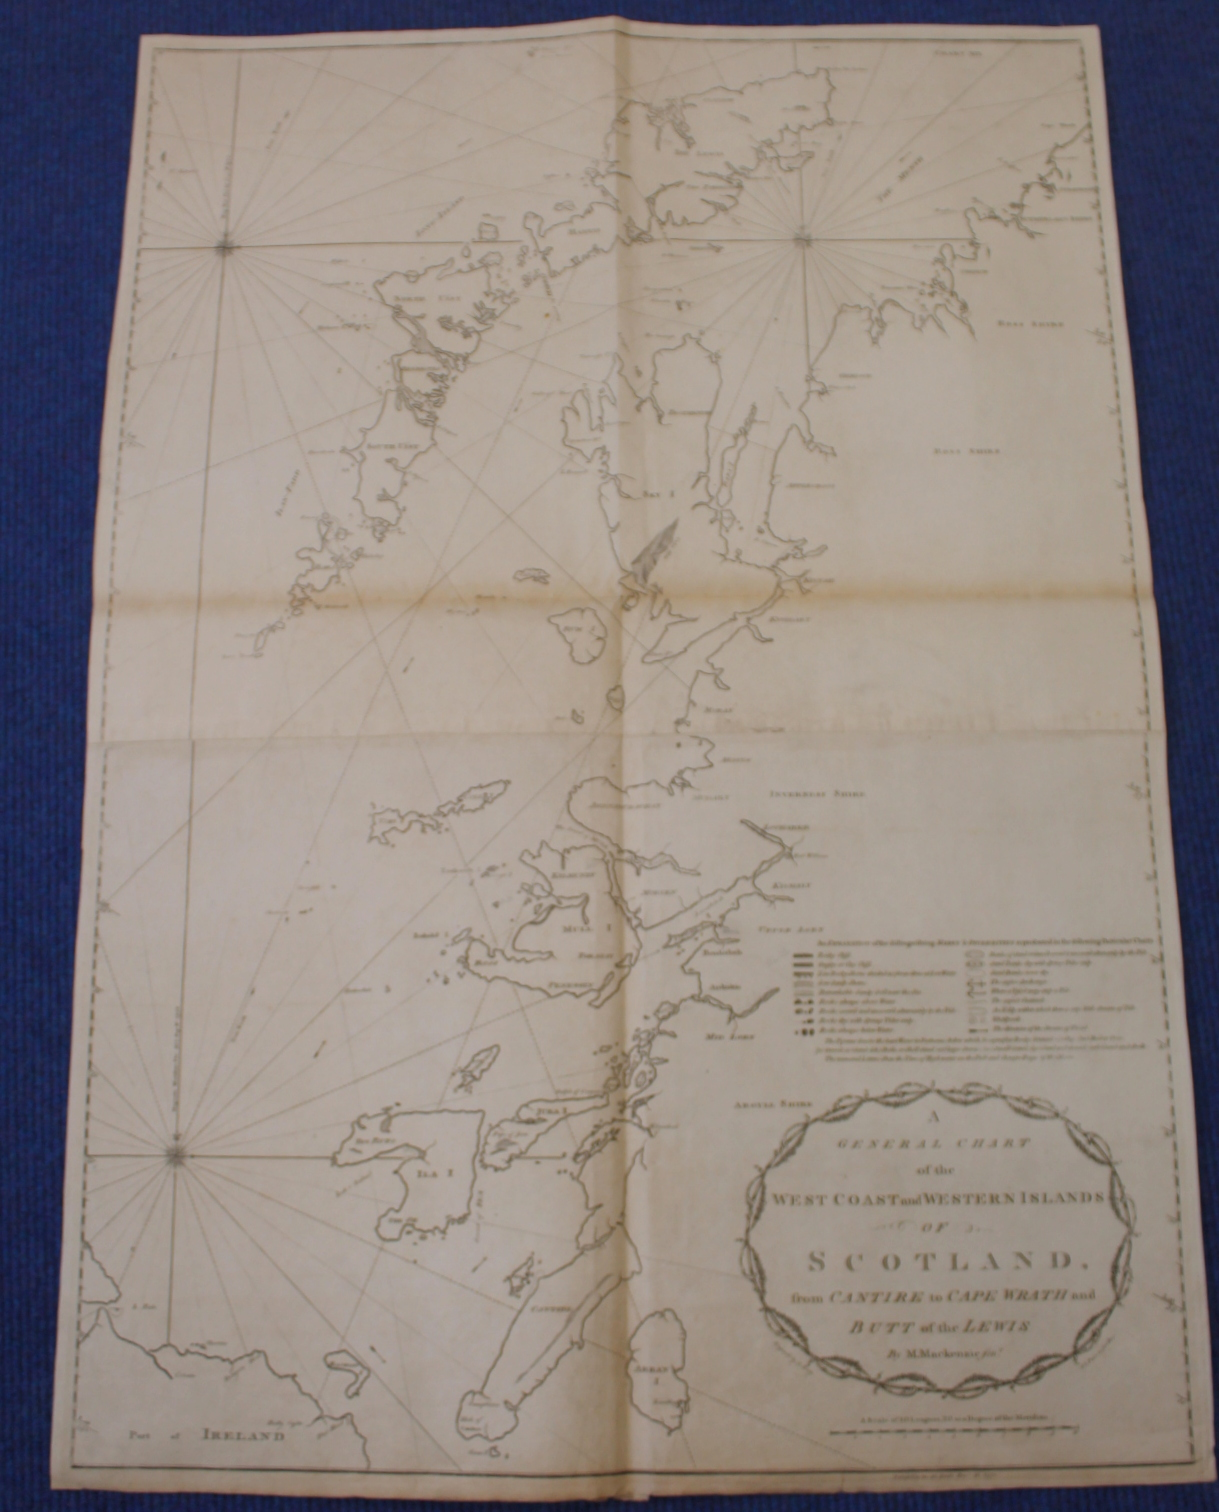 MACKENZIE MURDOCH (SNR.).A General Chart of the West Coast & Western Islands of Scotland from - Image 22 of 66